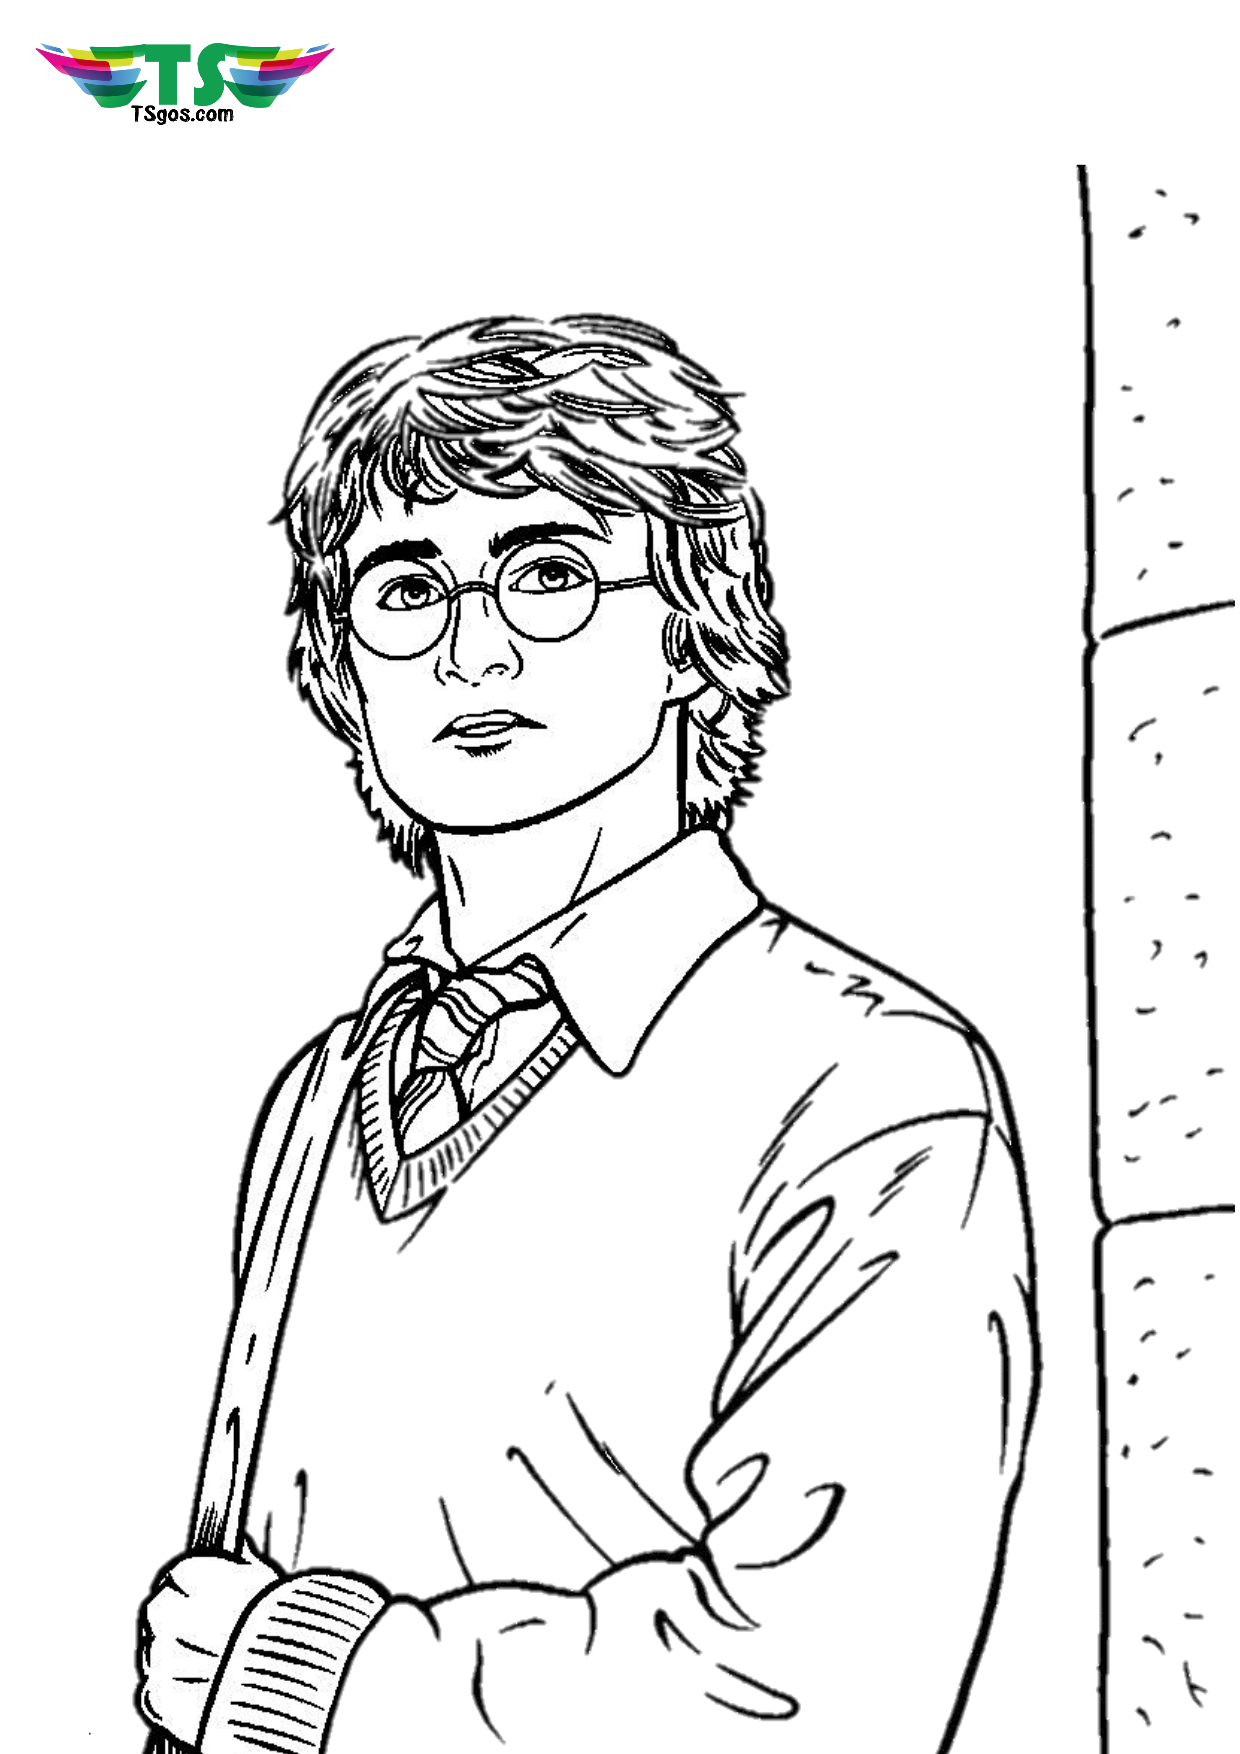 Harry Potter coloring pages - TSgos.com